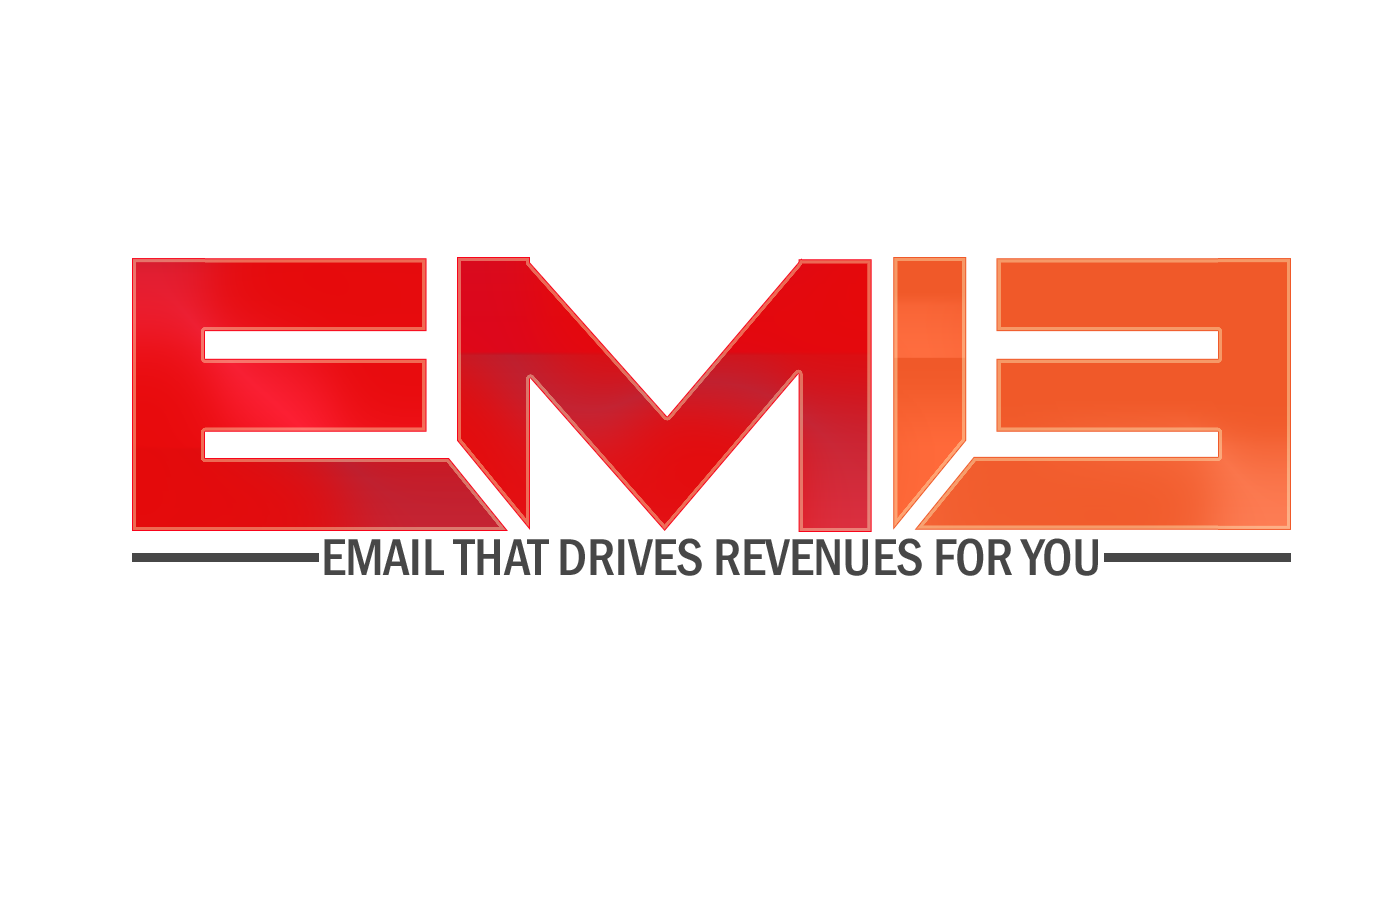 EM13 Email That Drives Revenues